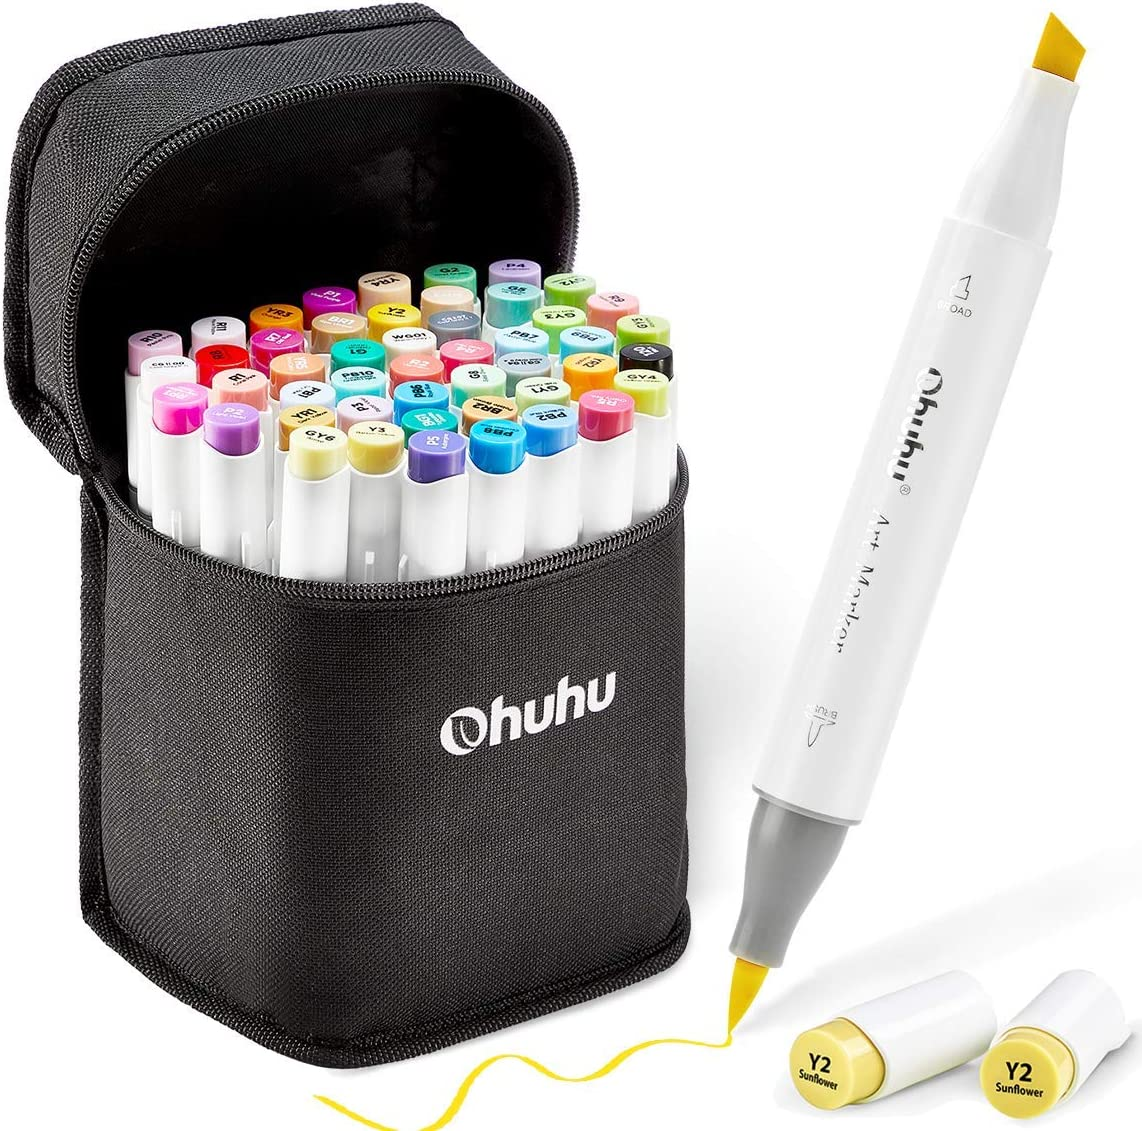 48 Colors Alcohol Brush Markers, Ohuhu Double Tipped ( Brush & Chisel ) Sketch Markers for Kids, Artist Art Markers, Adult Coloring and Illustration, Comes w/ 1 Colorless Alcohol Marker Blender